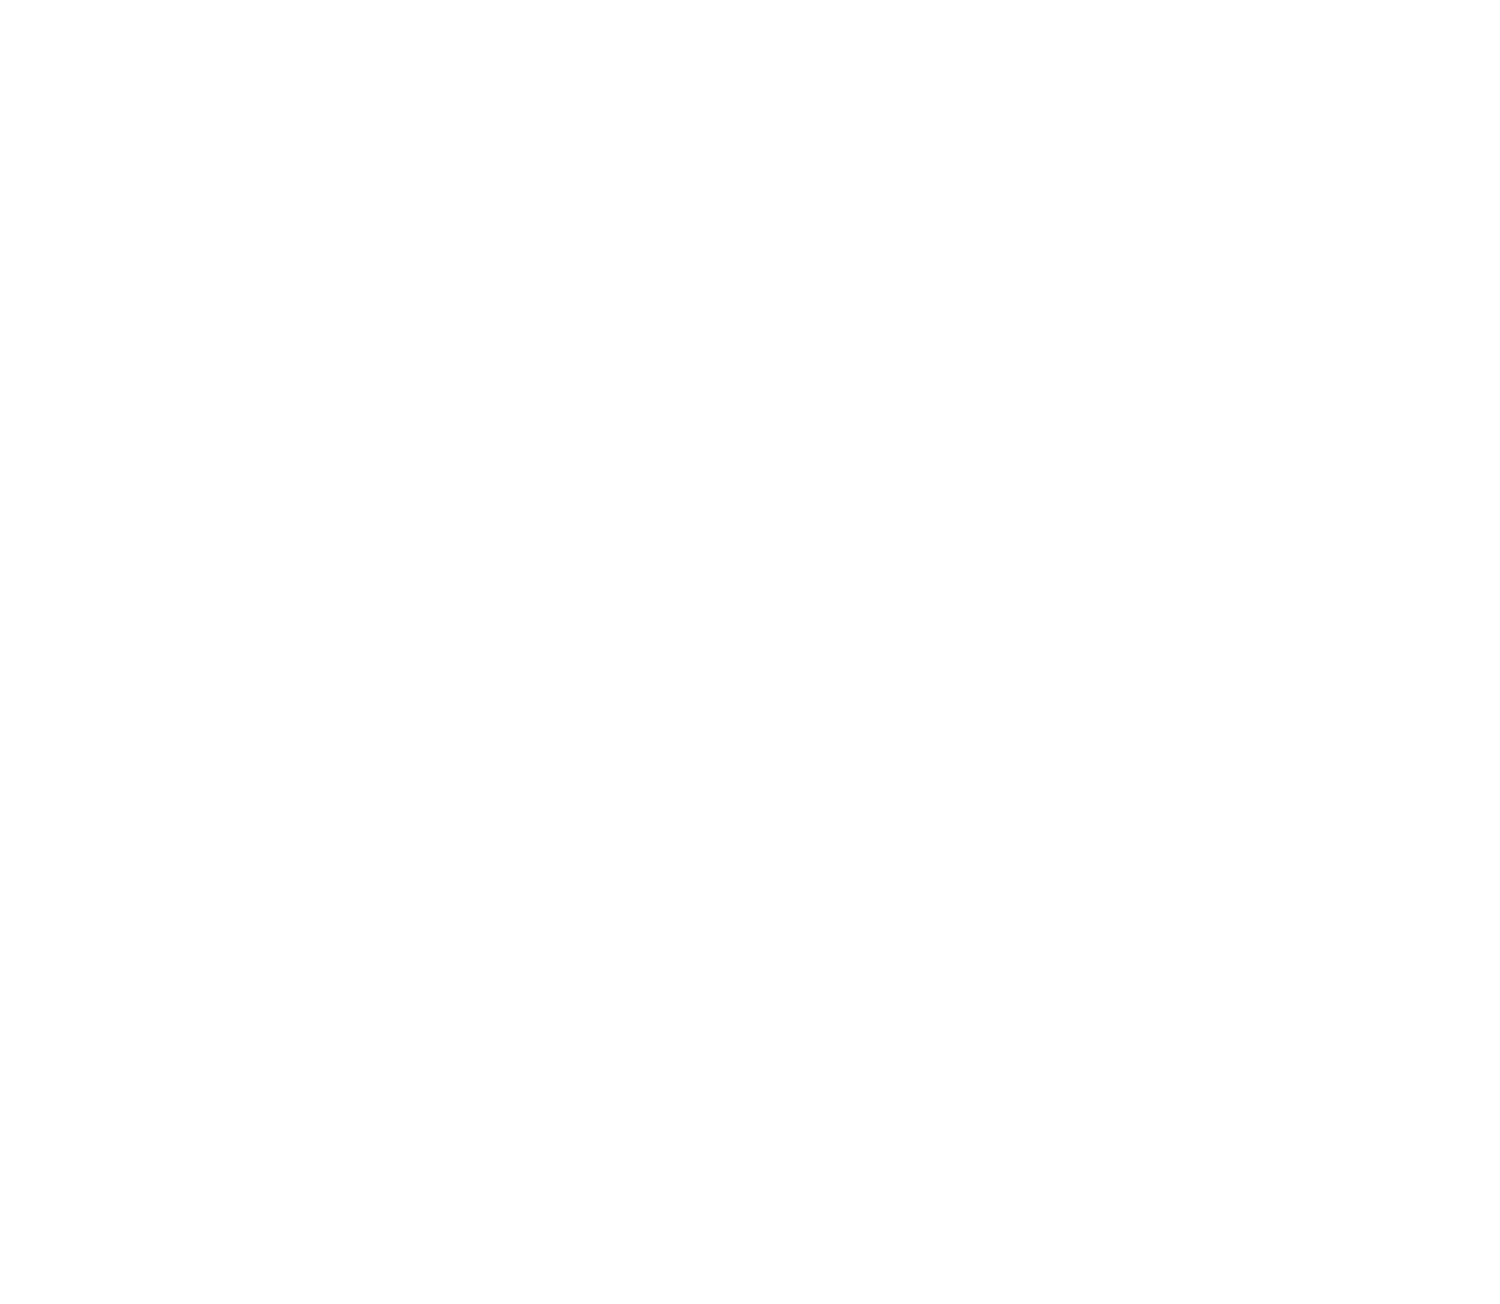 The Beautiful Listings